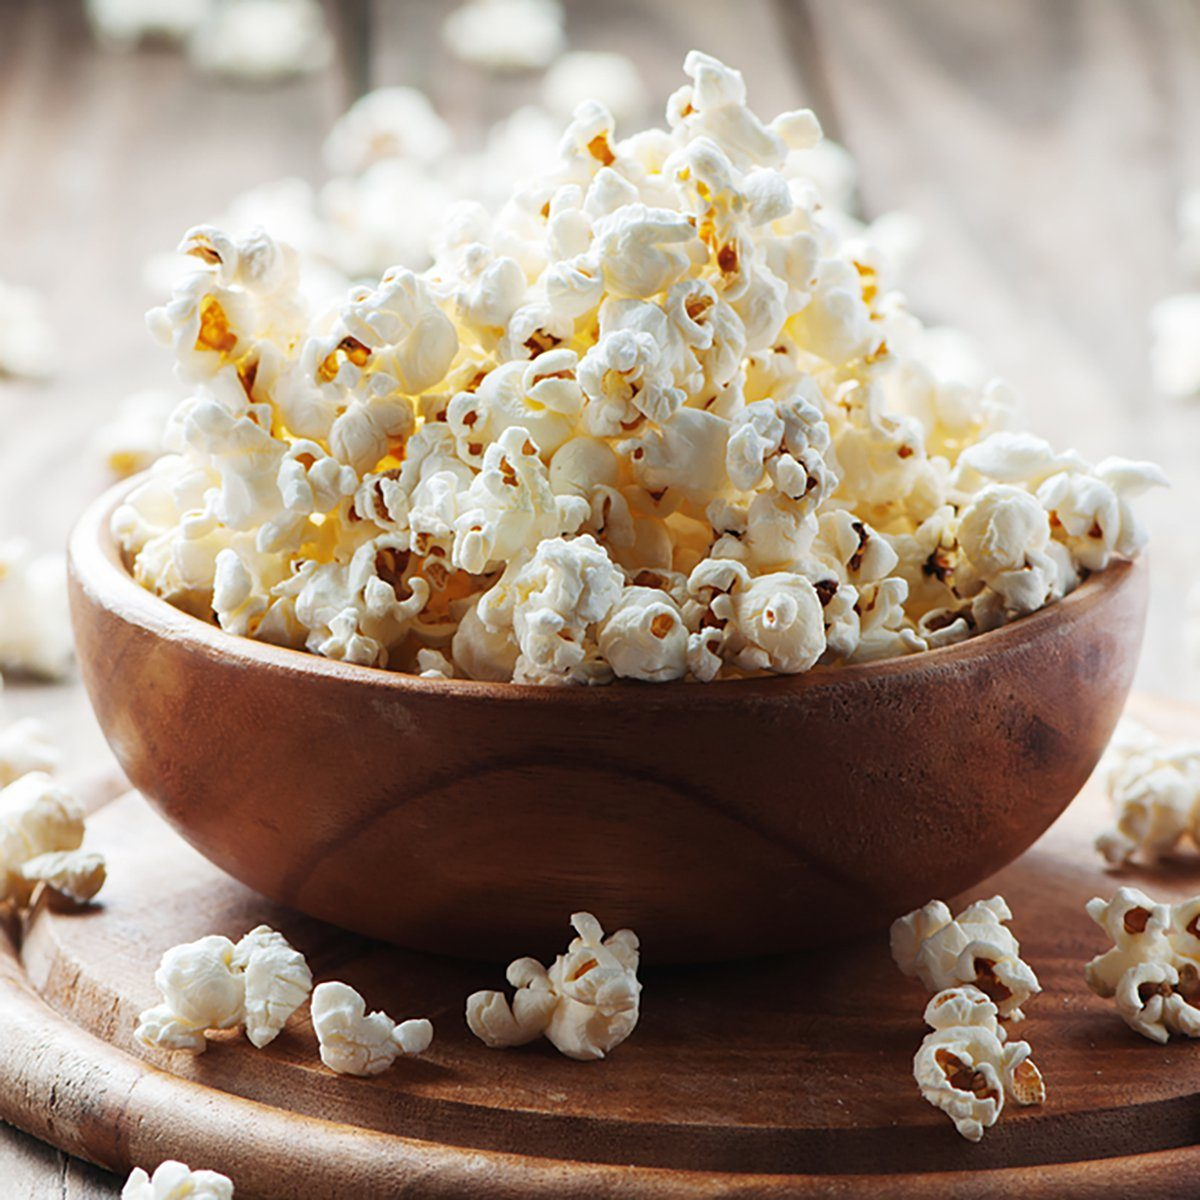 Salt popcorn on the wooden table